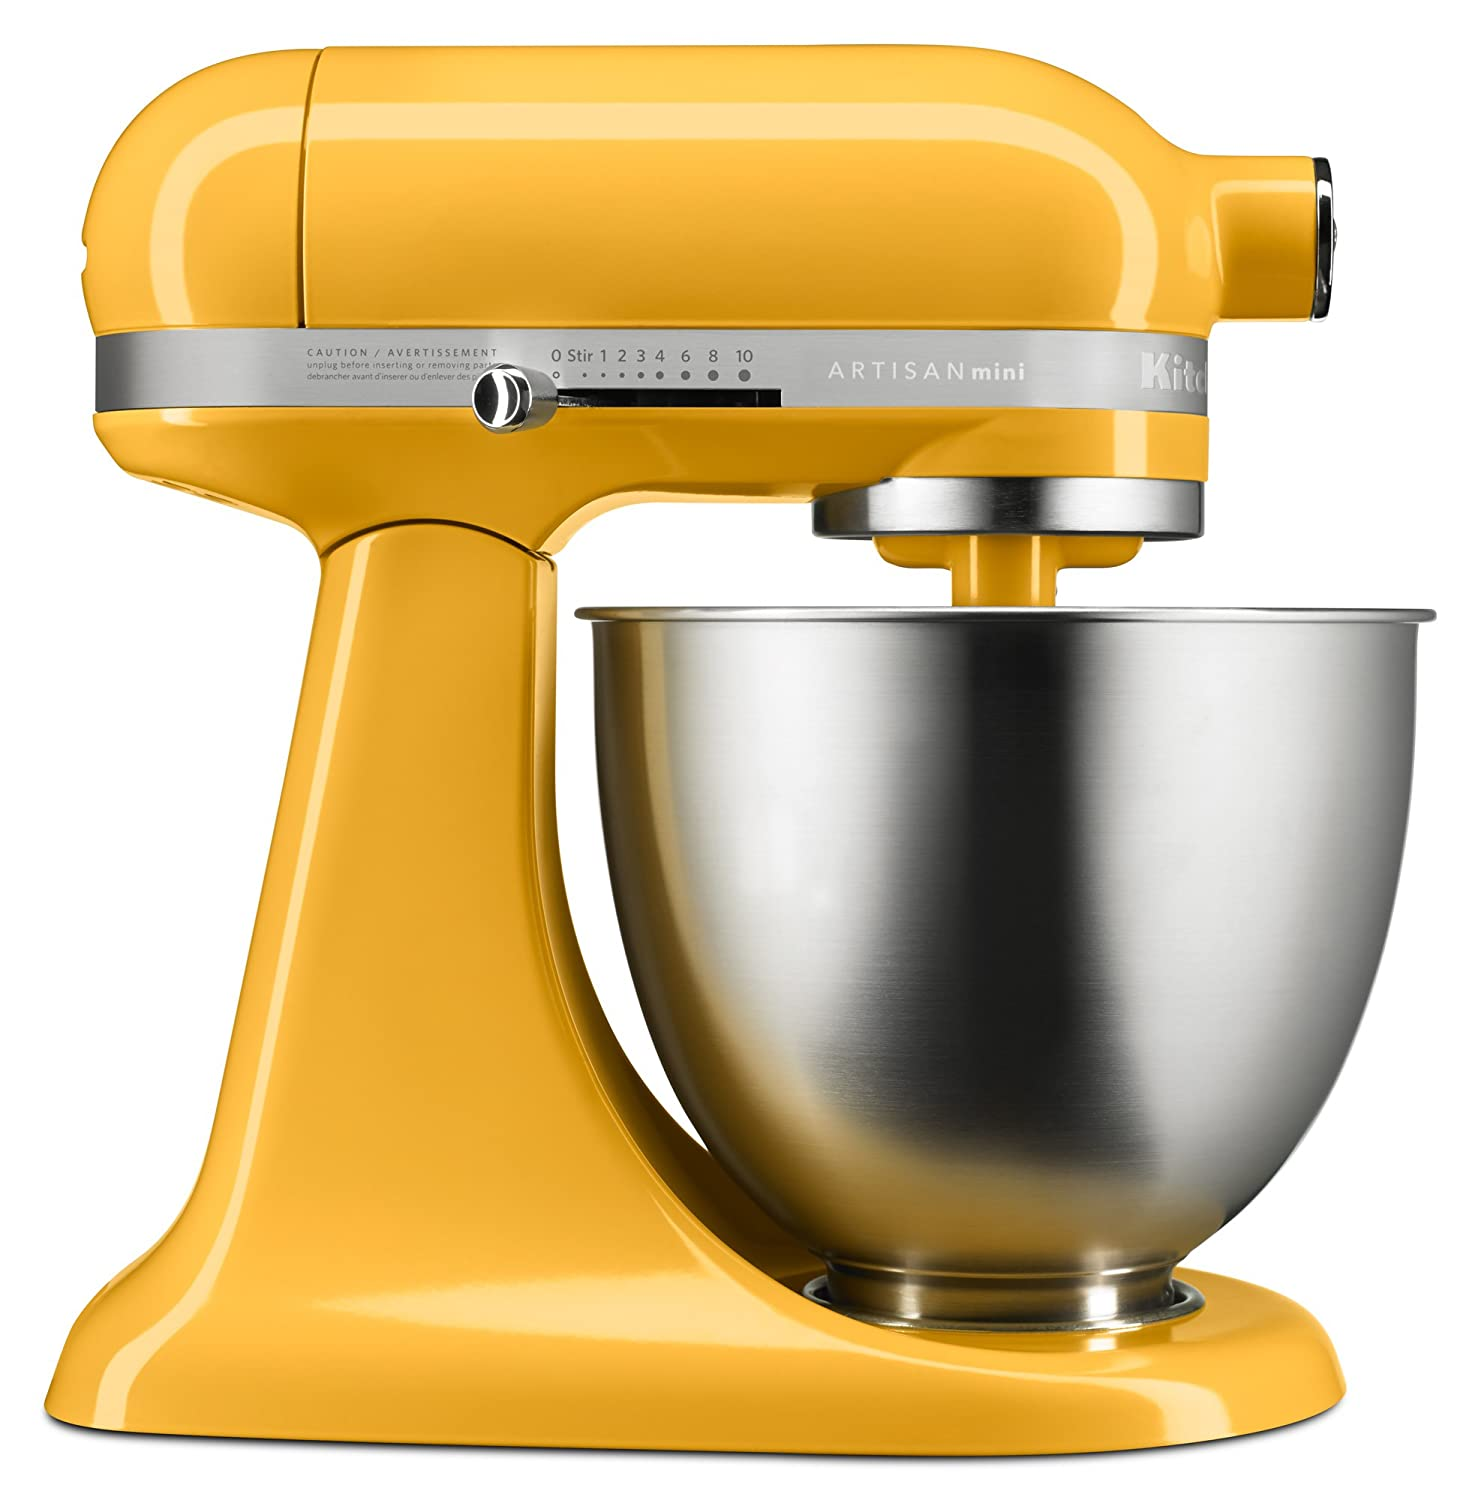 KitchenAid KSM3311XBF Artisan Mini Series Tilt-Head Stand Mixer, Orange Sorbet, 3.5 quart